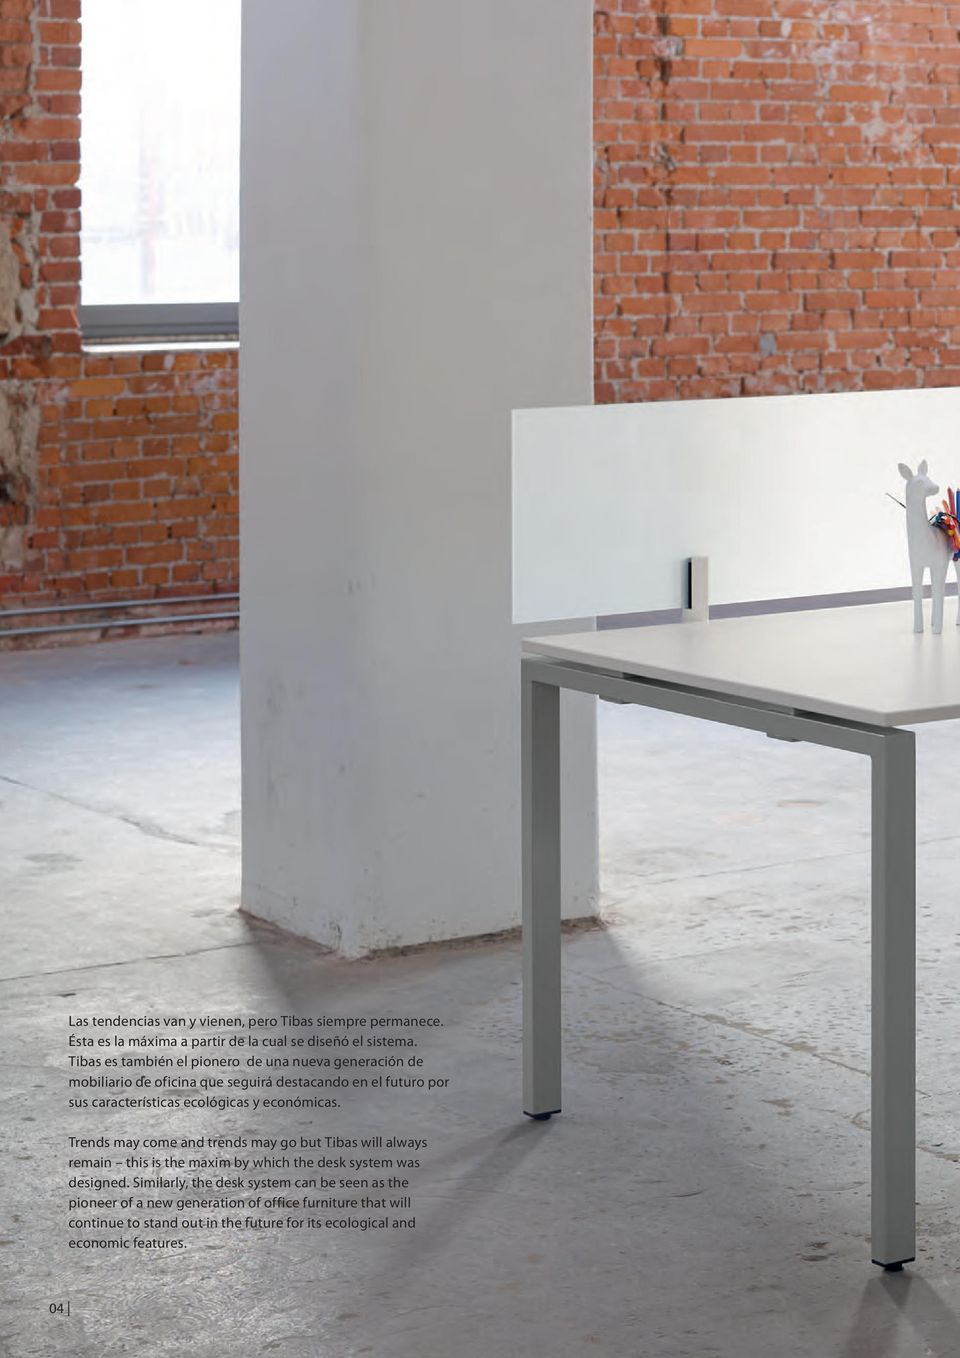 ecológicas y económicas. Trends may come and trends may go but Tibas will always remain this is the maxim by which the desk system was designed.